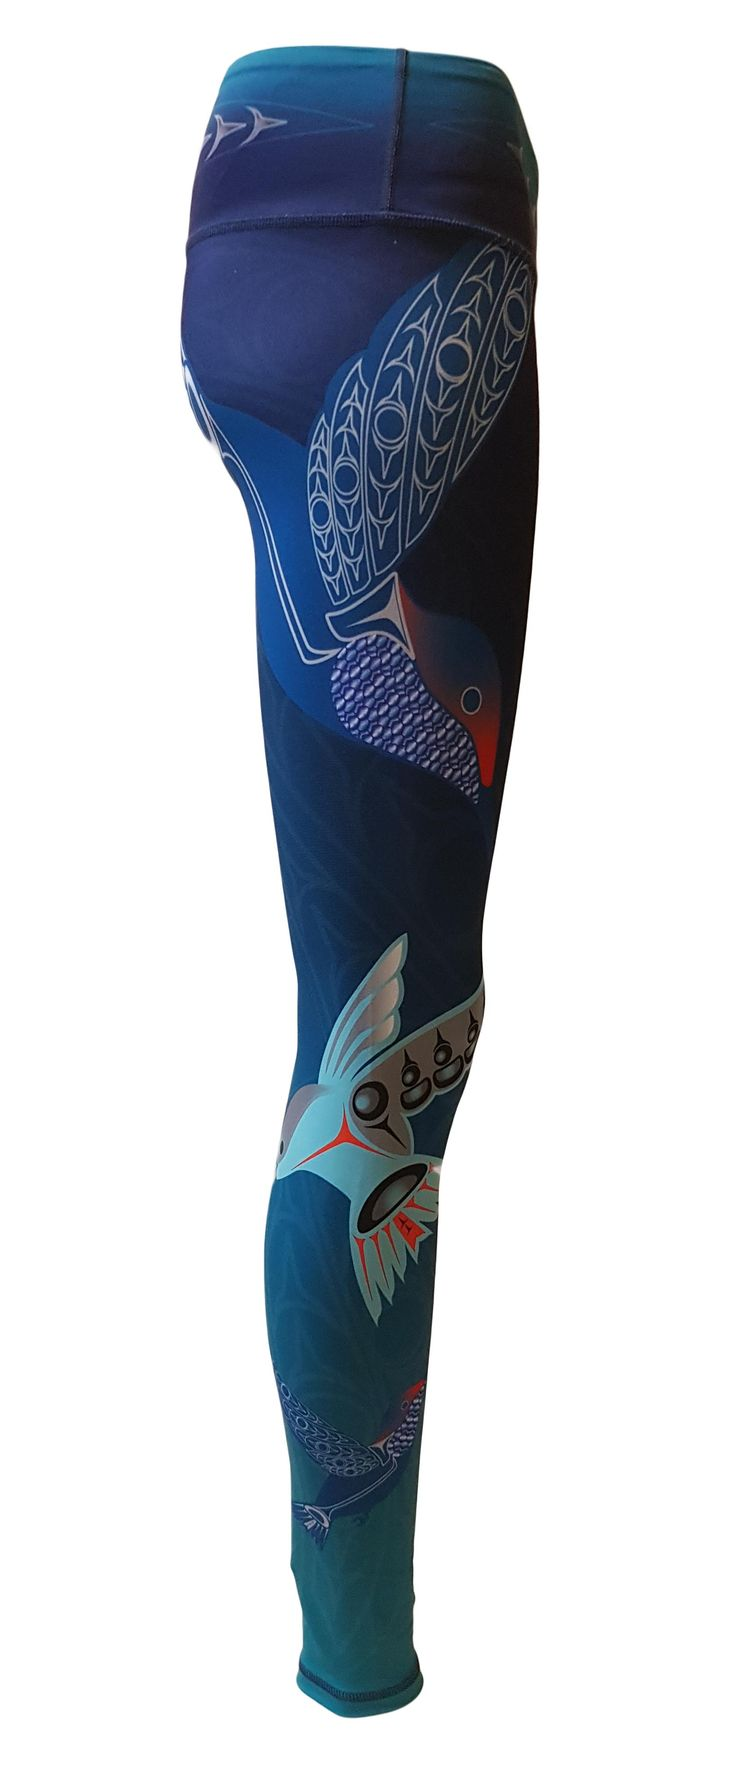 Yoga Legging, Made in Canada. Hummingbird, Love and Light. Beautiful blue, green, teal colours, like the hummingbird. The hummingbird reminds us how beautiful we are .